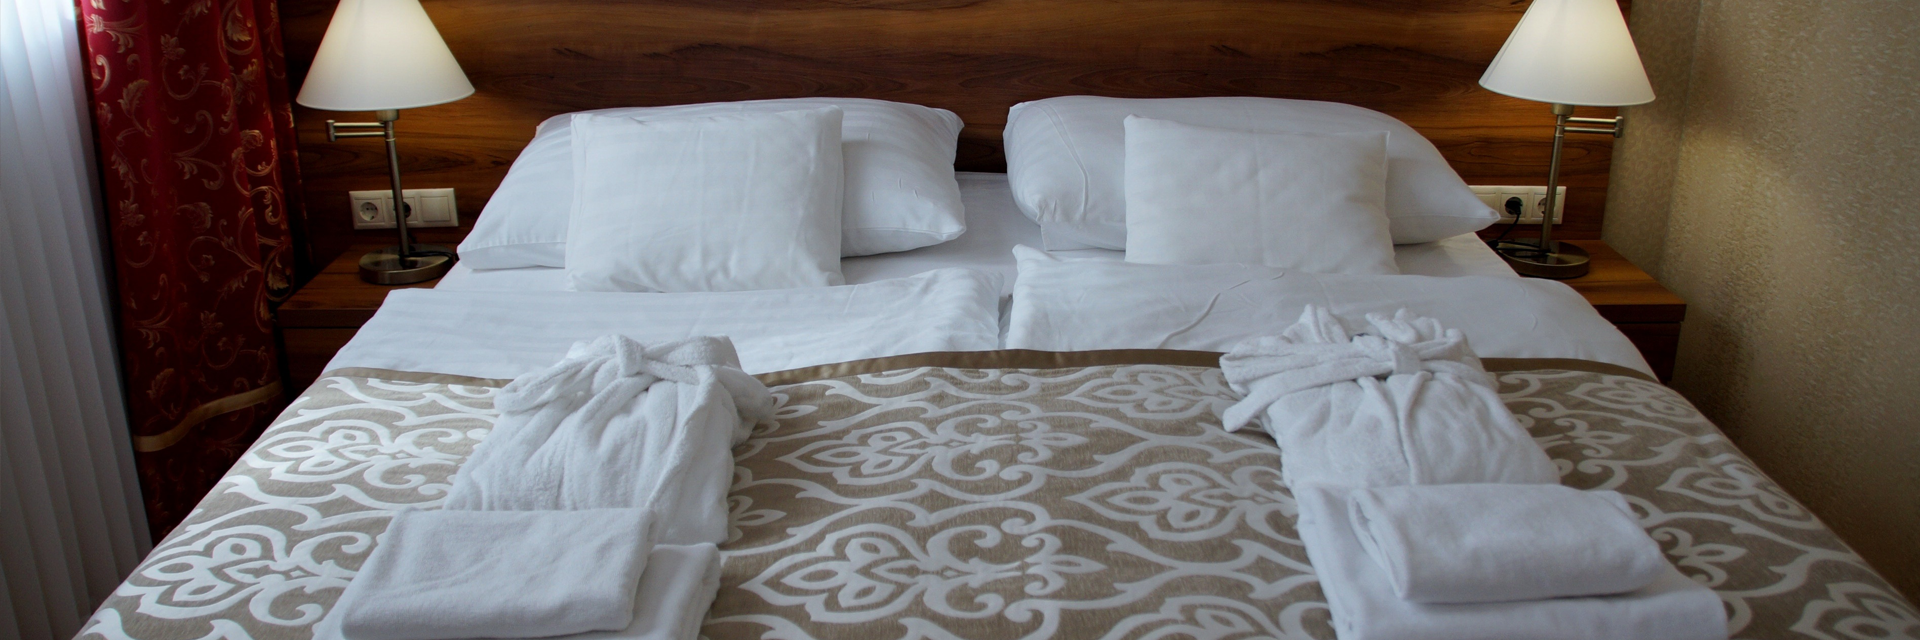 outsourcing laundry services in hotels